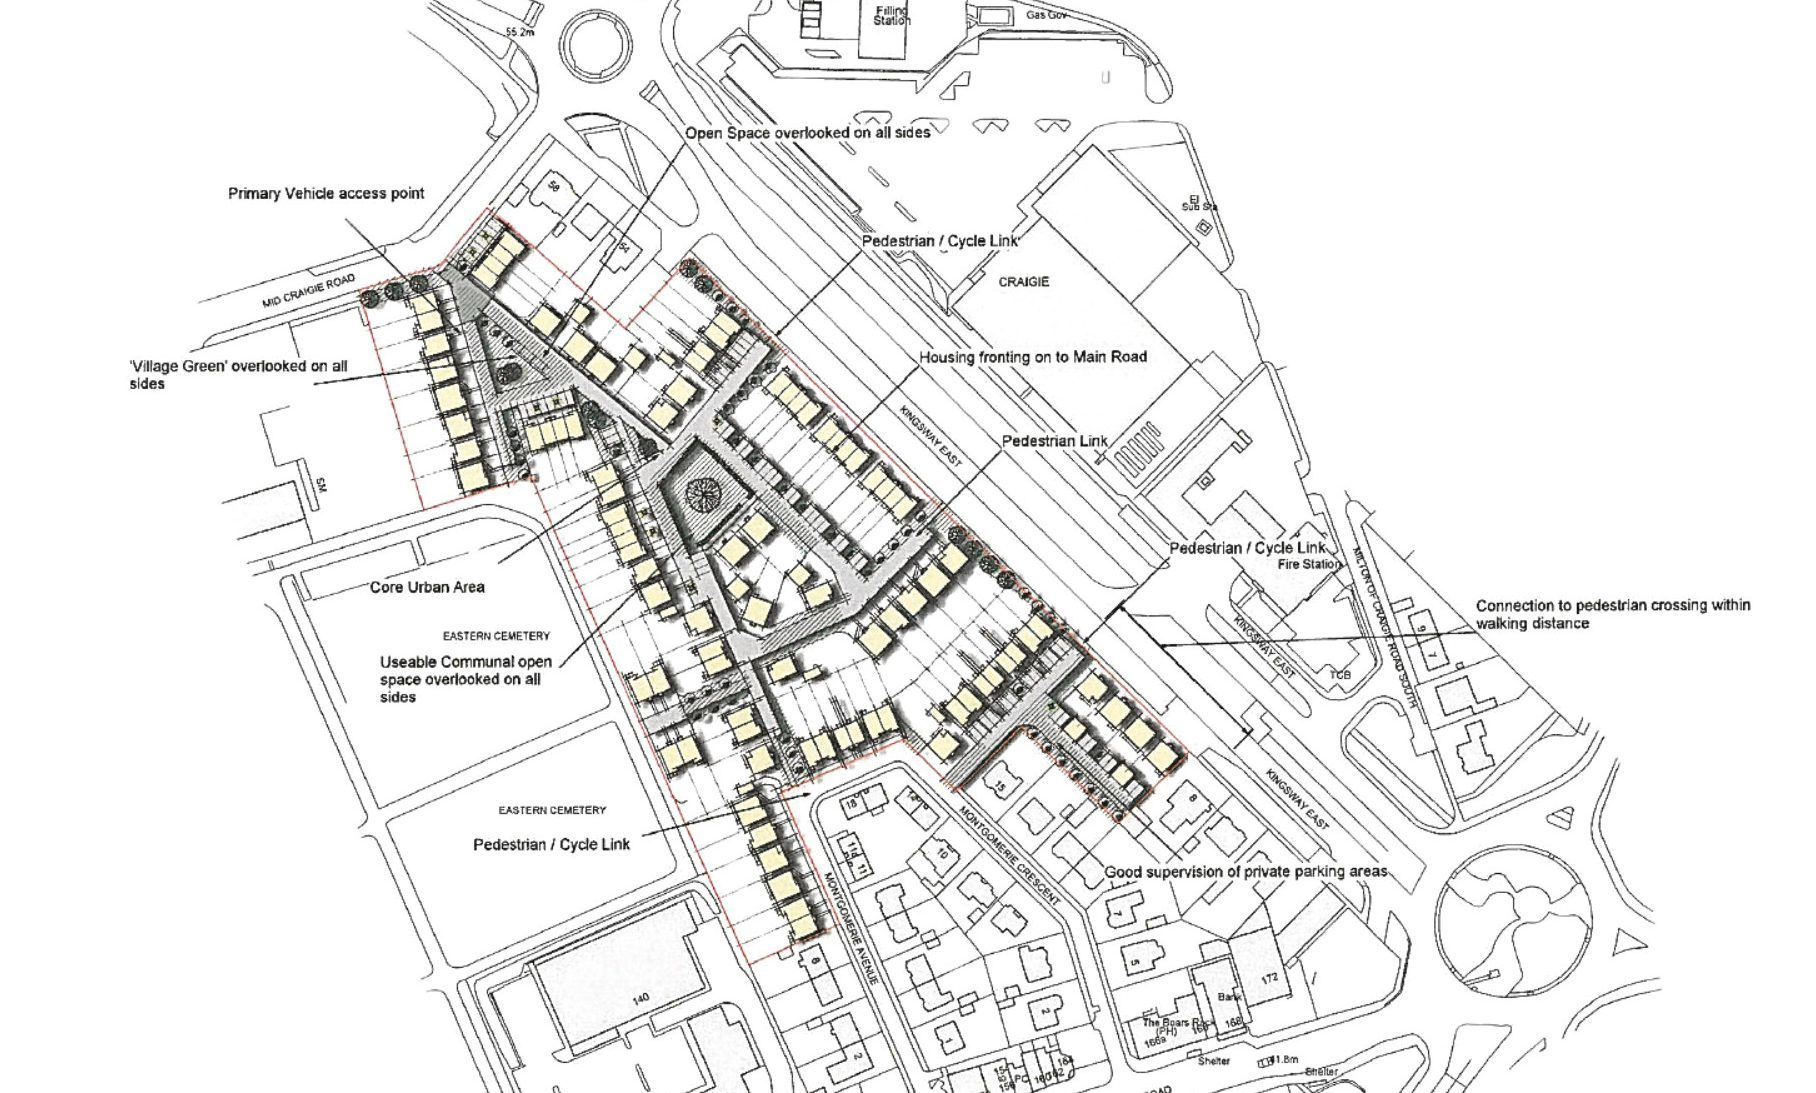 The proposed redevelopment of the former whisky bottling plant